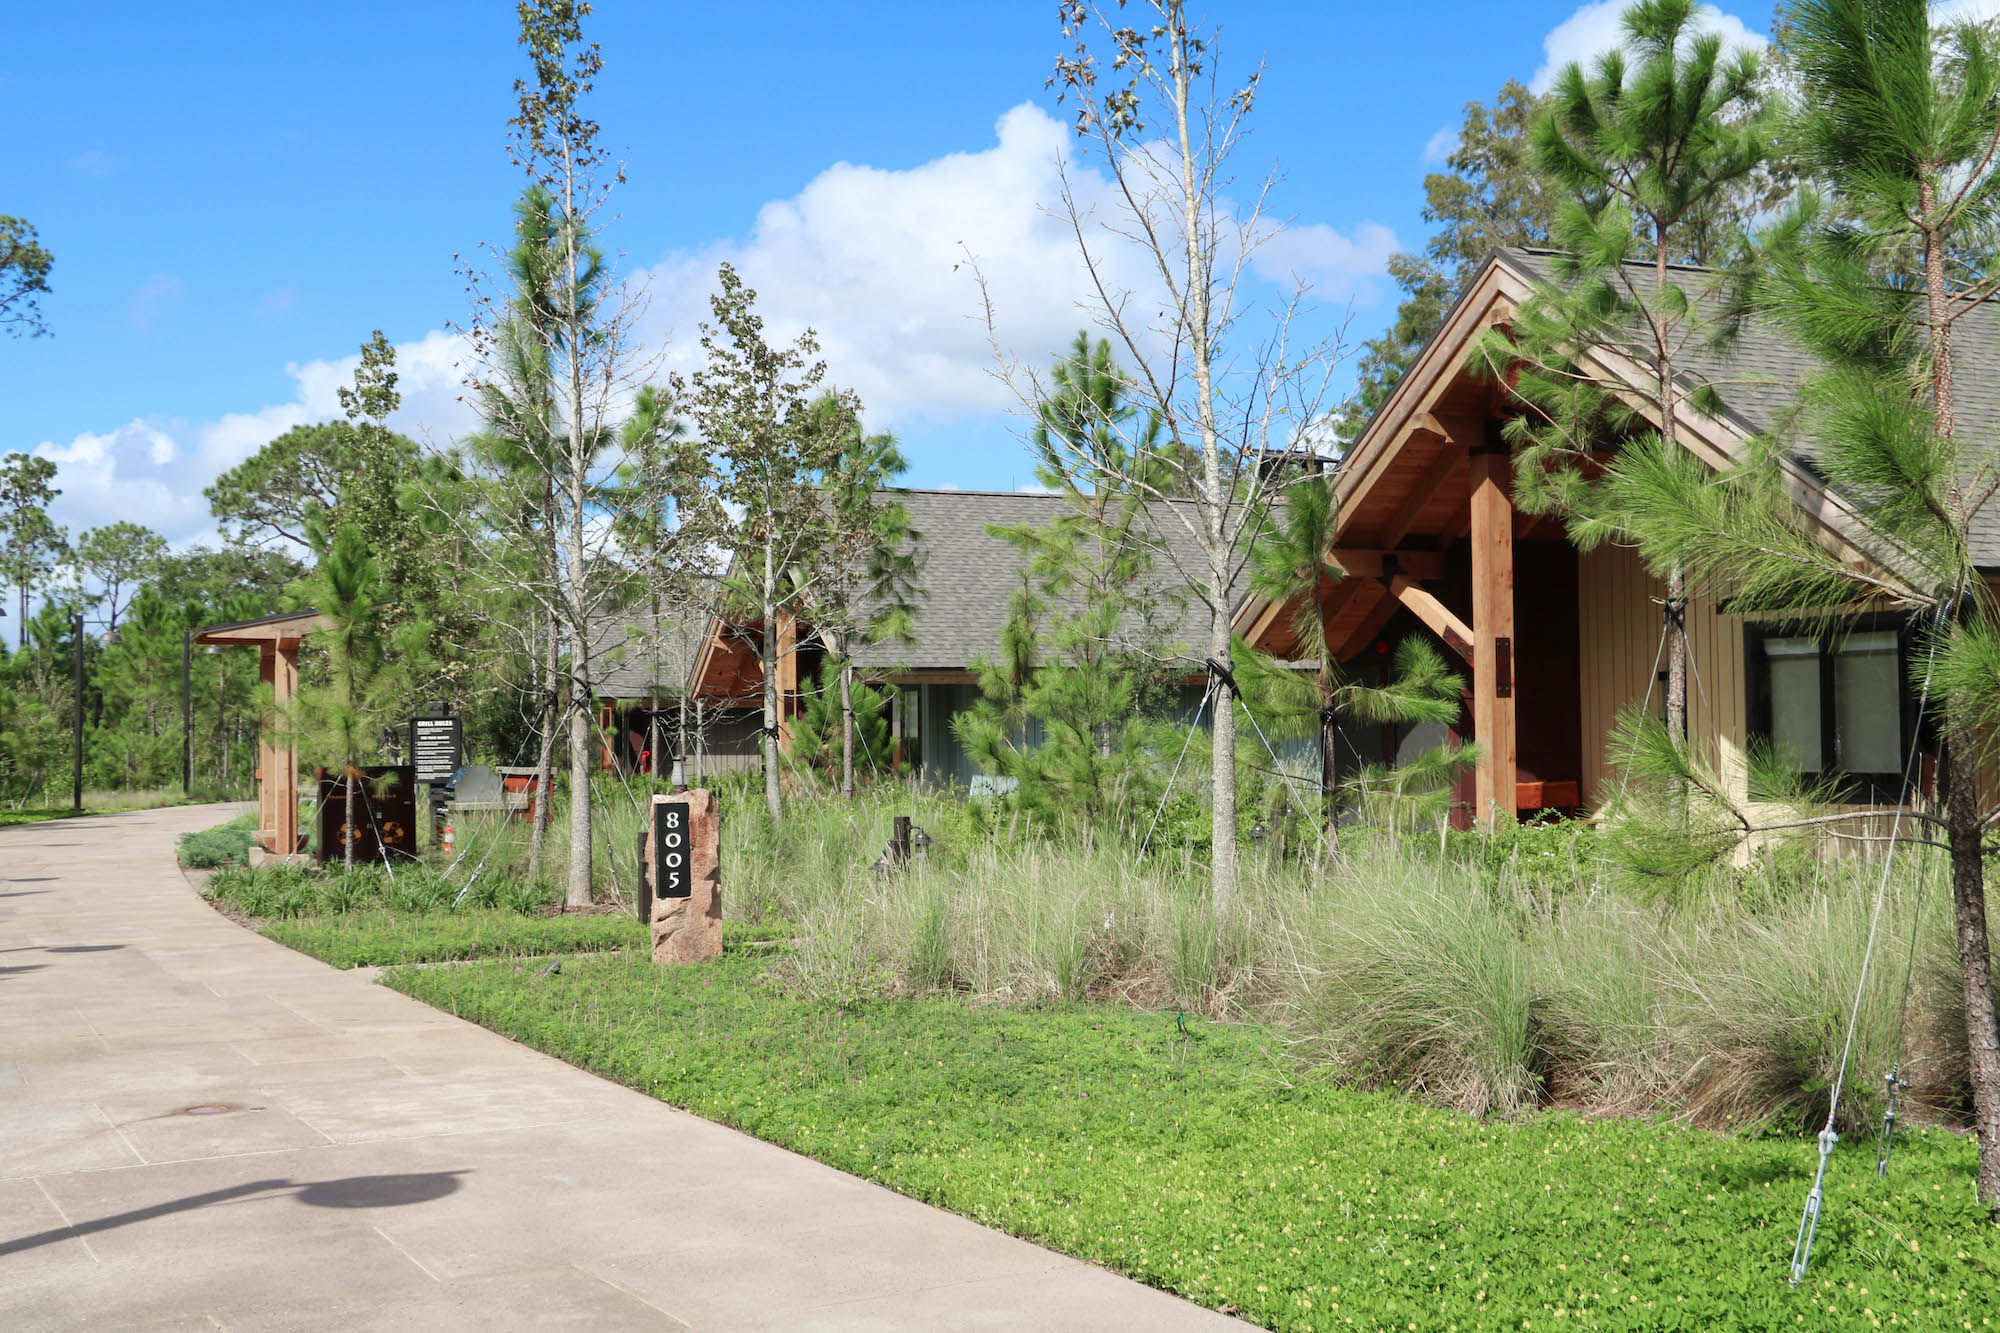 Disney DVC Copper Creek Wilderness Lodge private cabins